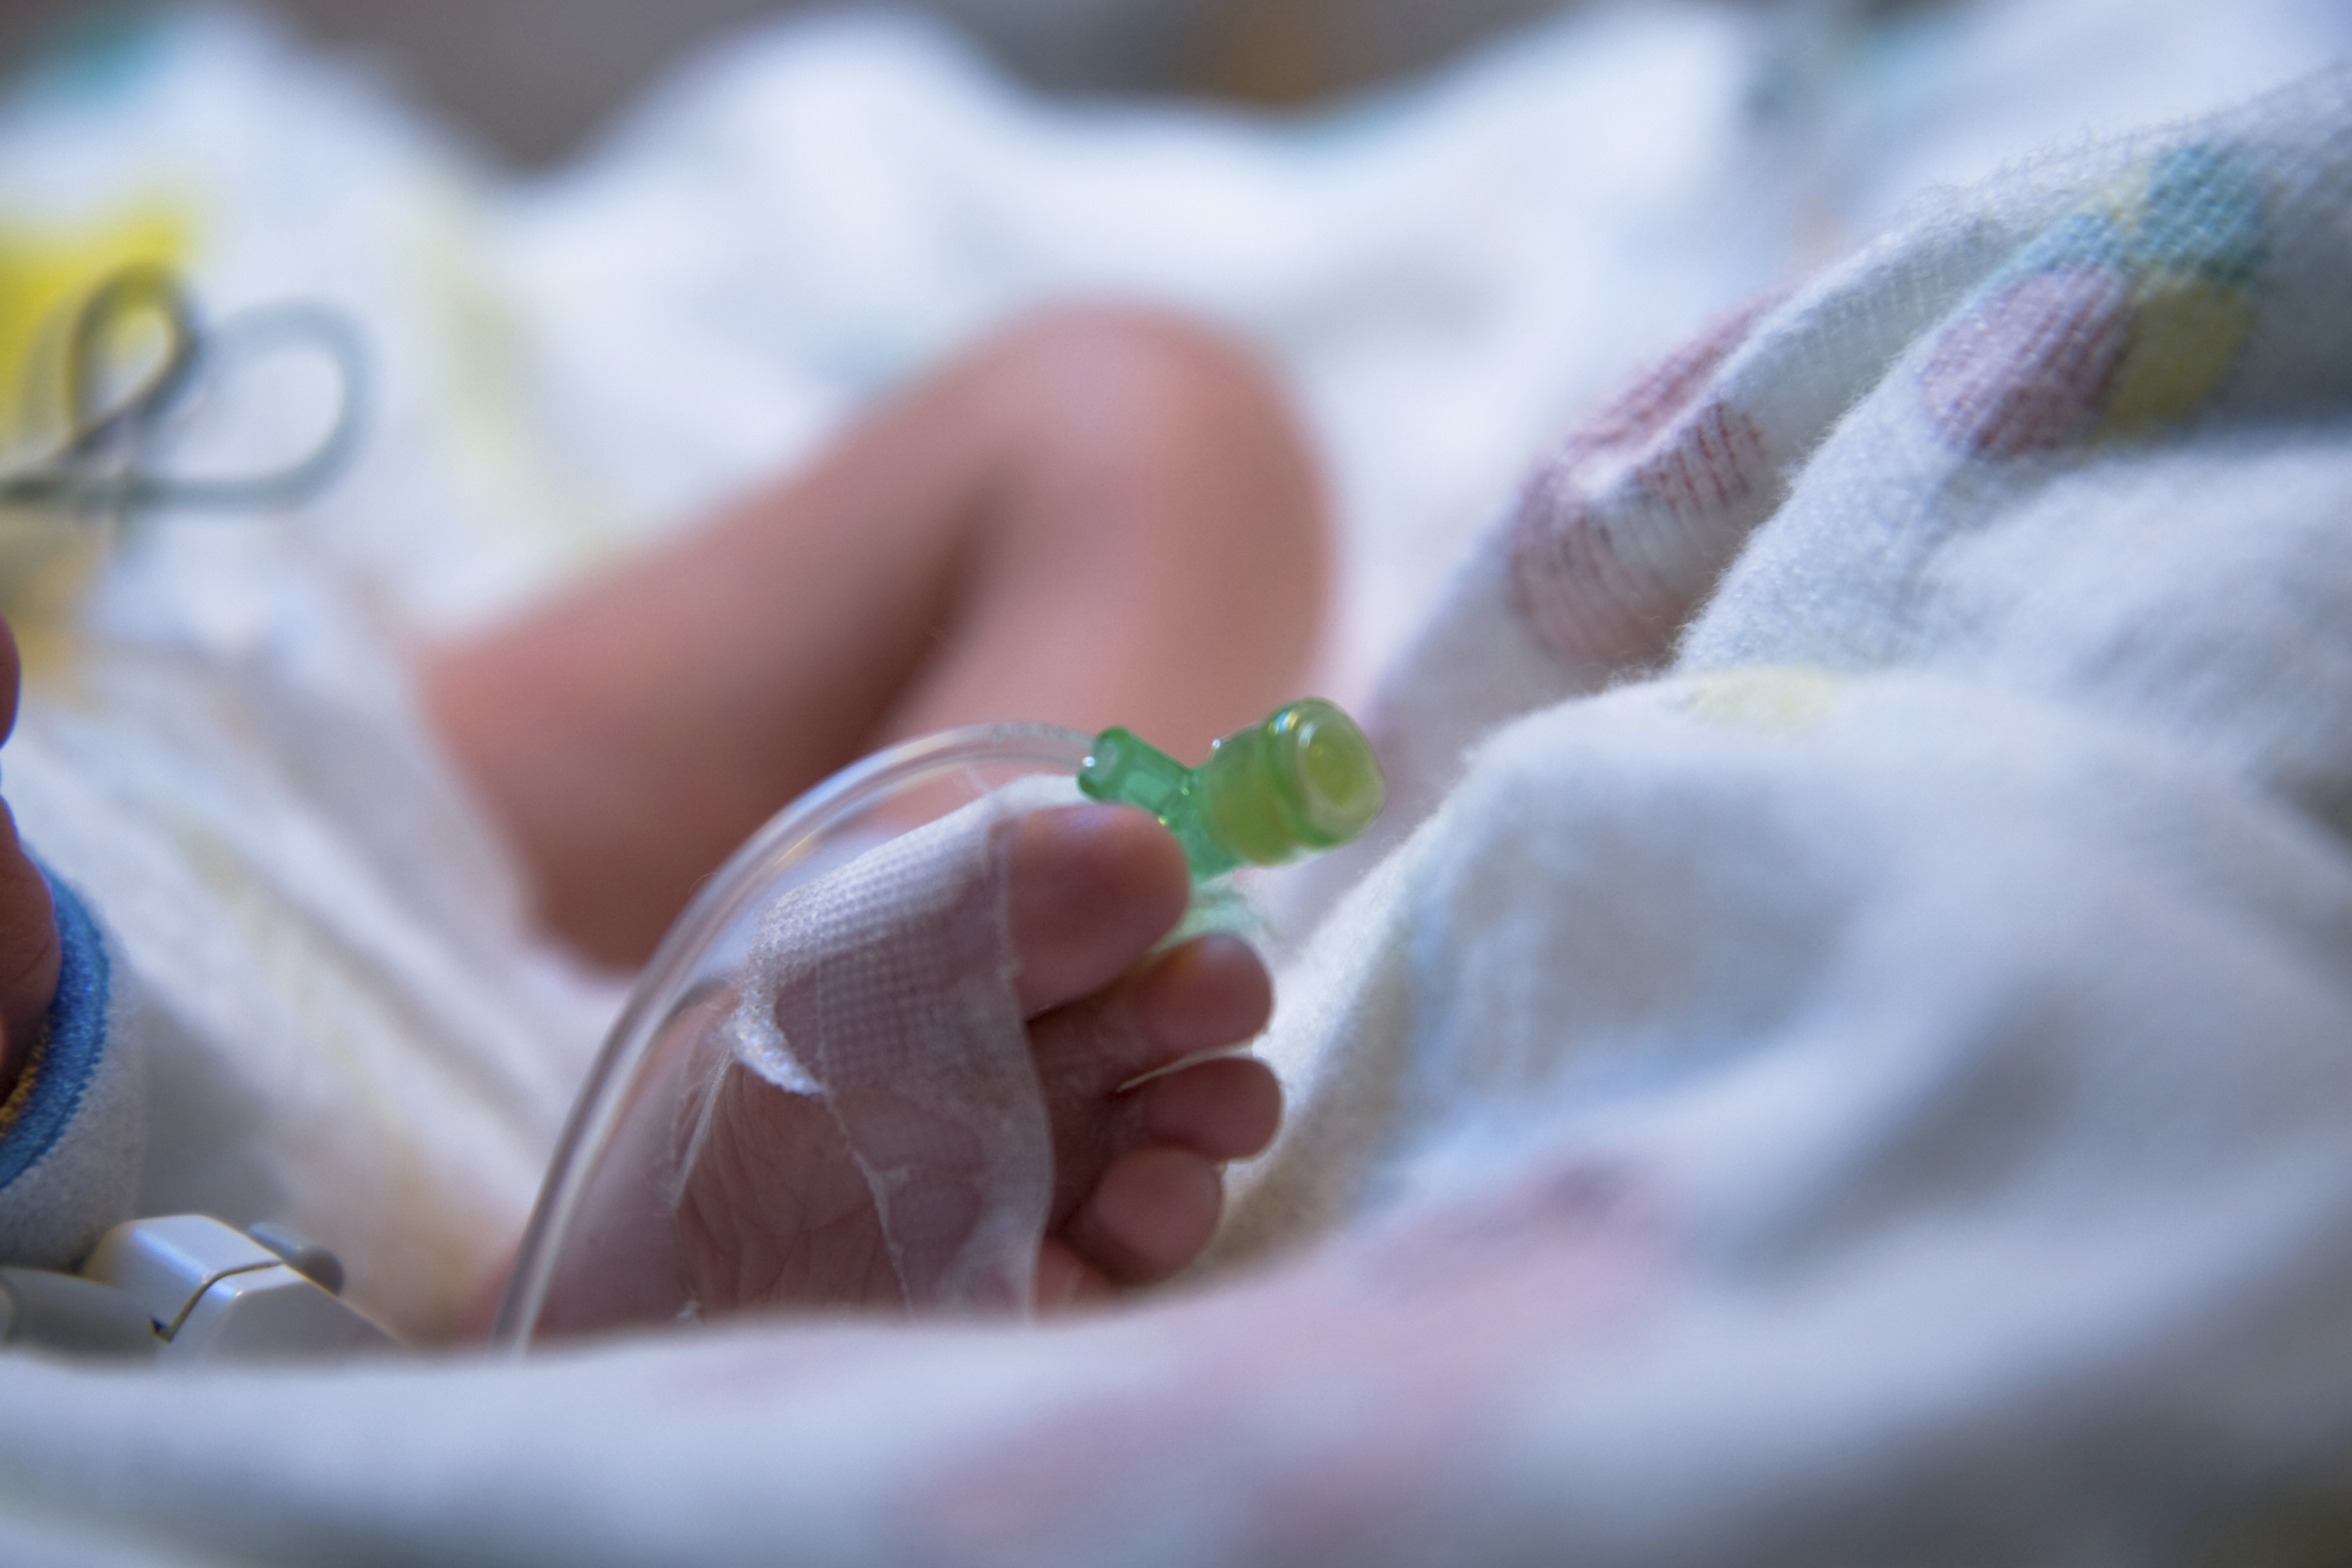 A premature baby undergoing medical procedures in the hospital (iStock Photo)